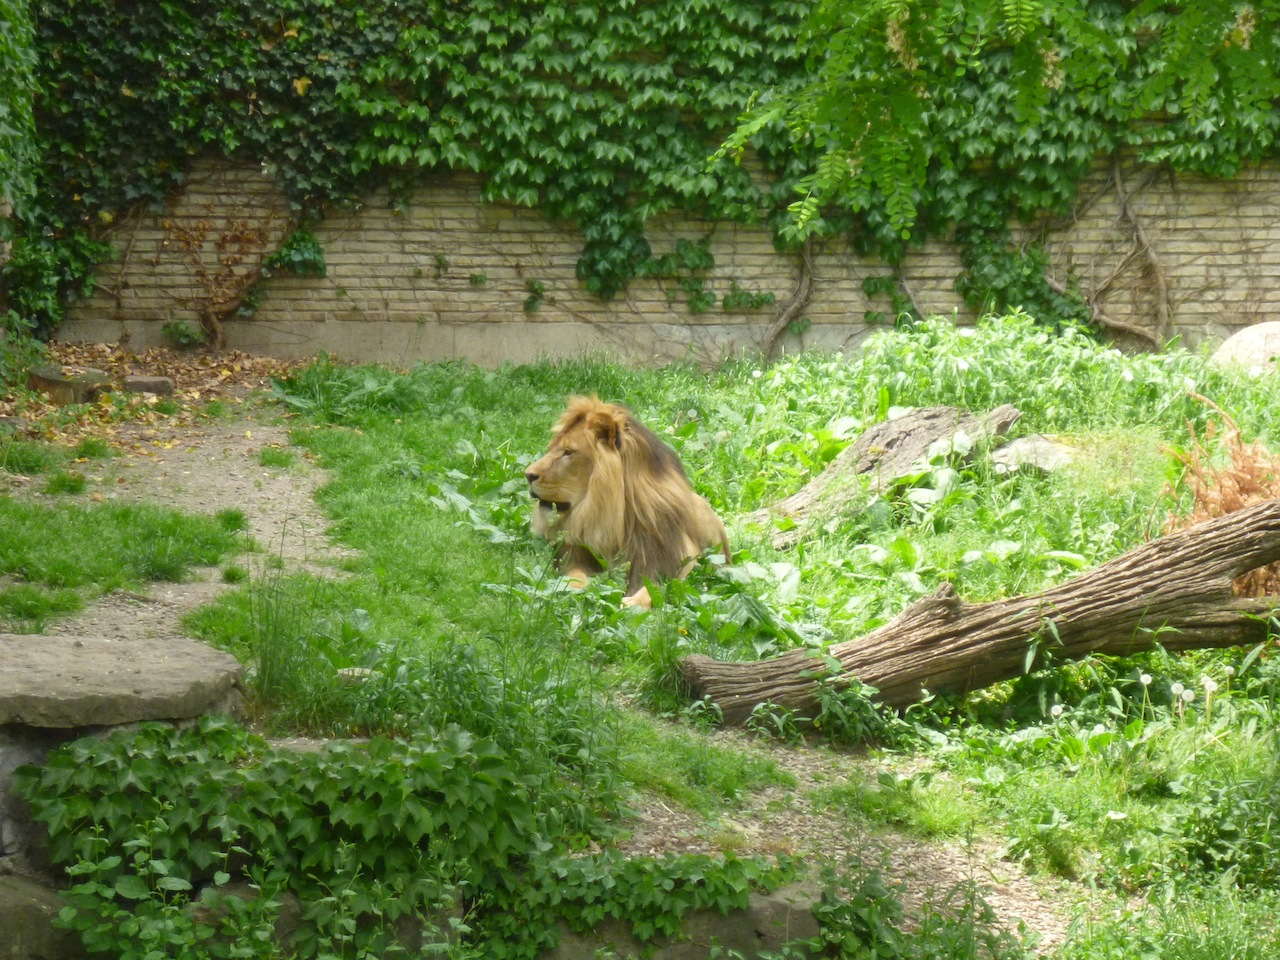 The Lion At The Zoo